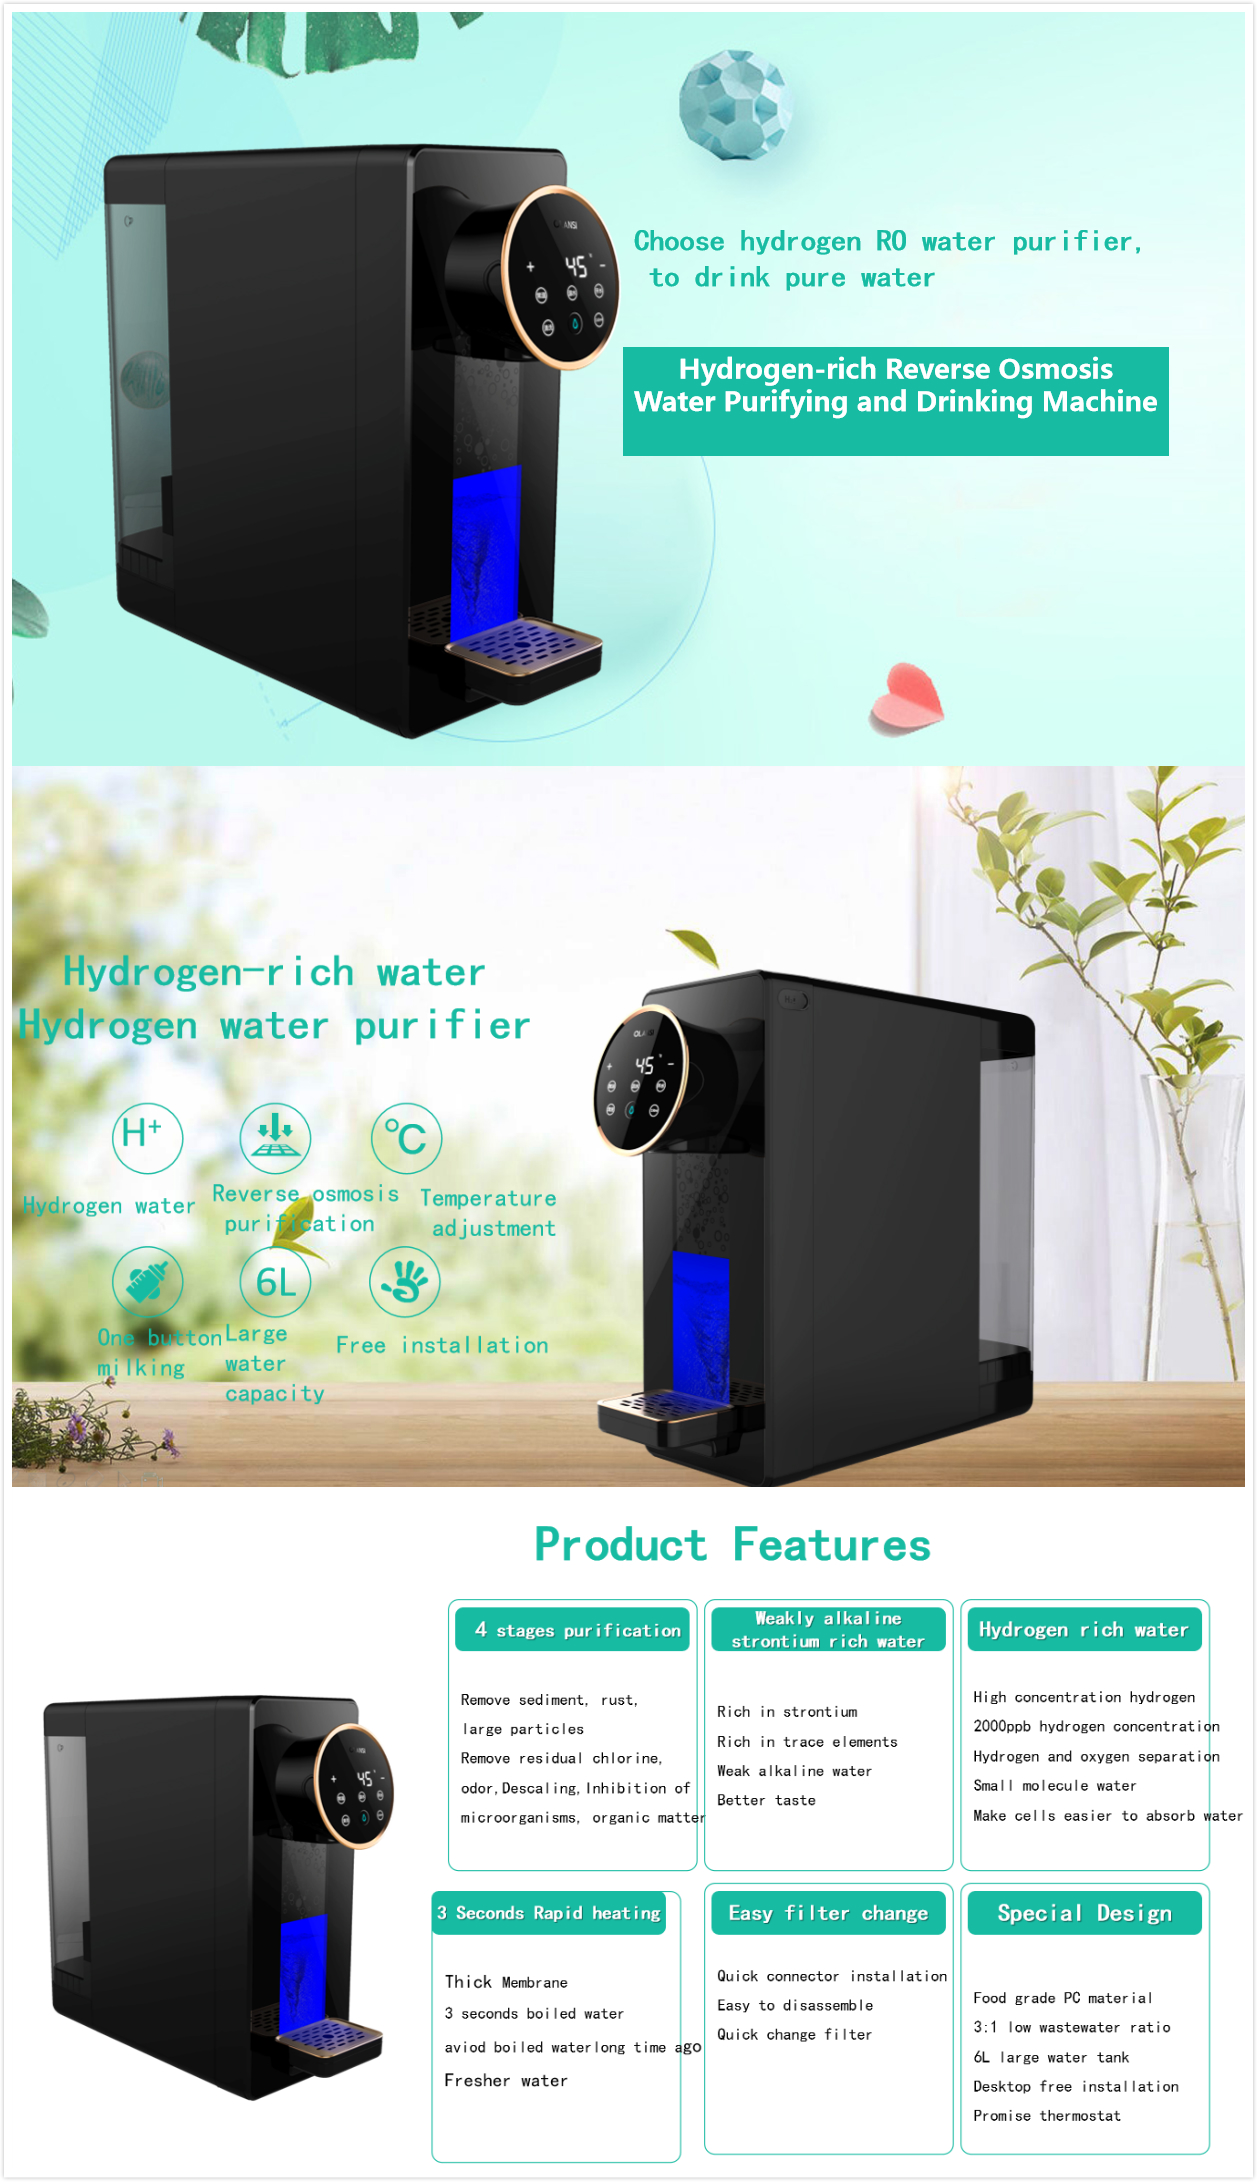 Free installation hydrogen rich water purifier with RO system for house